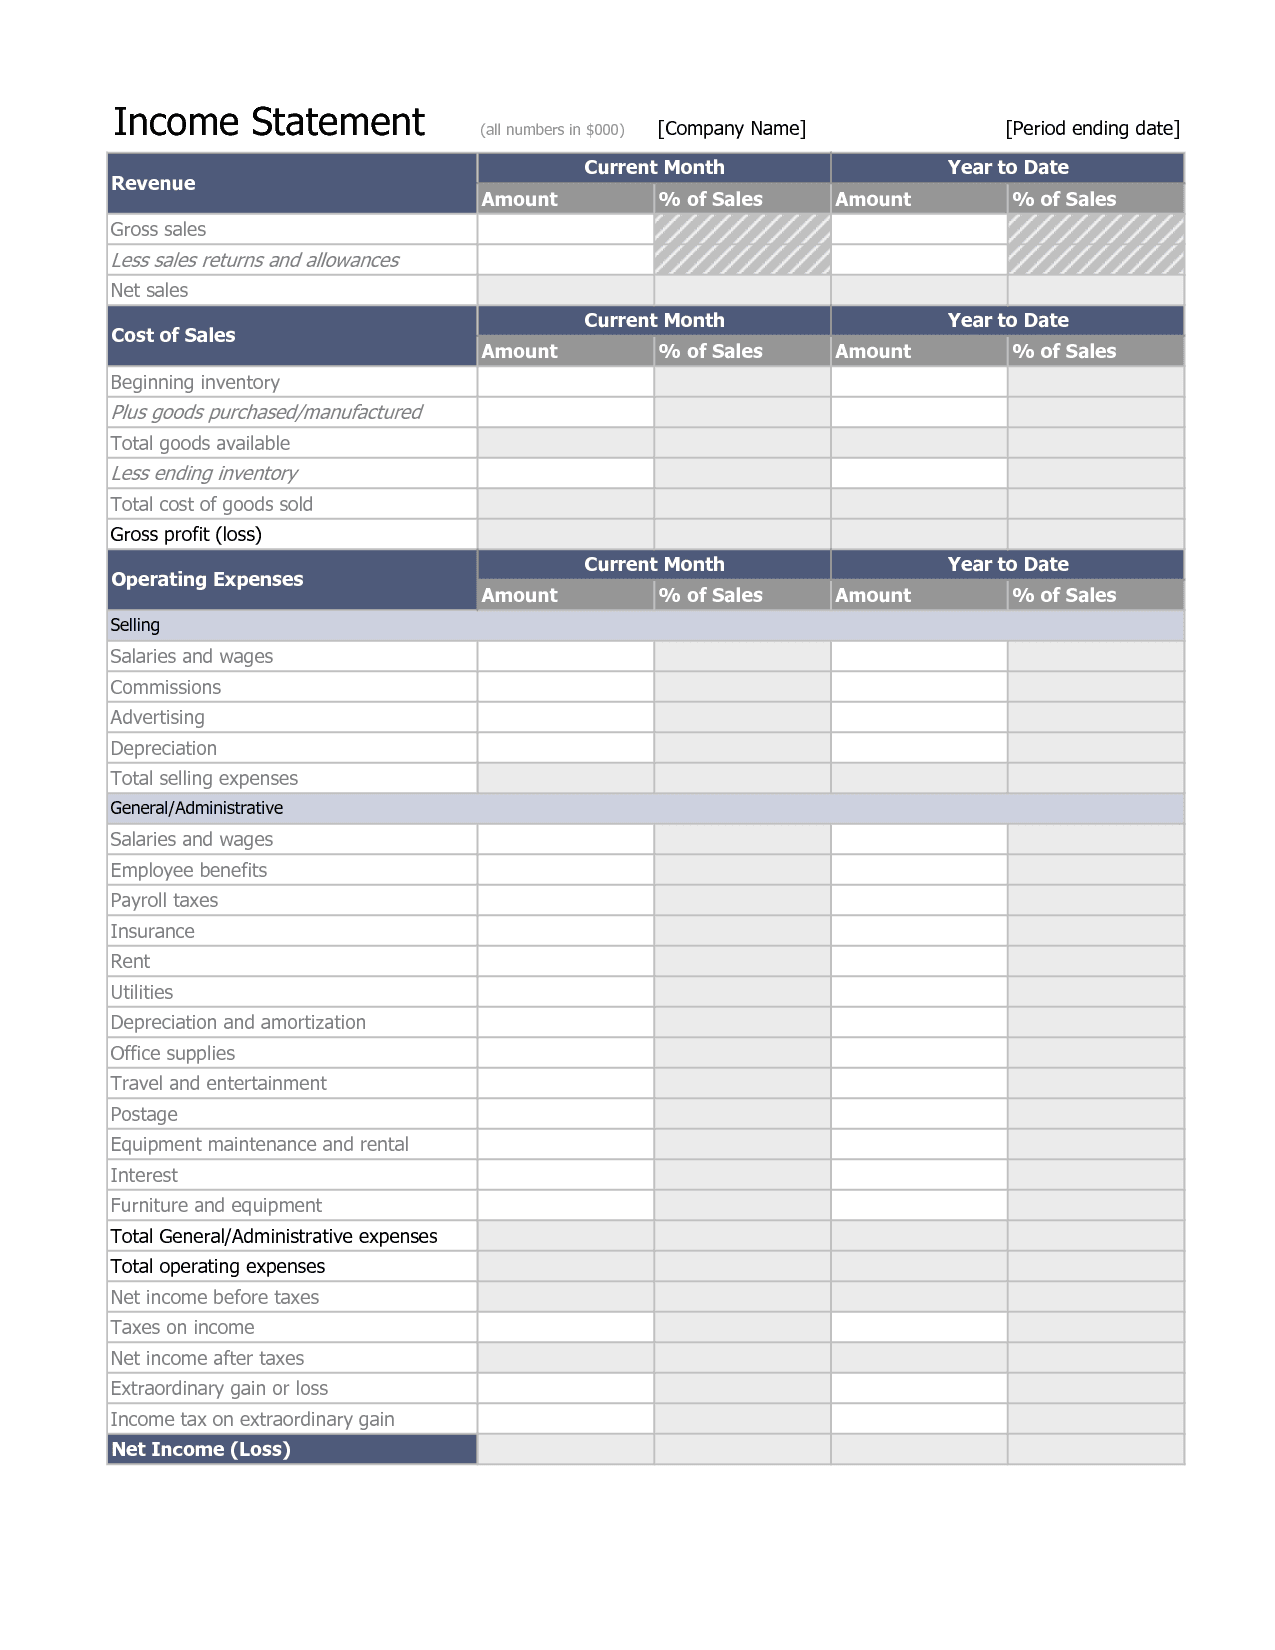 Income And Expenditure Template For Small Business Business Expense Spreadsheet Template Free Spreadsheet Templates for Busines Spreadsheet Templates for Busines Free Spreadsheet For Business Expenses